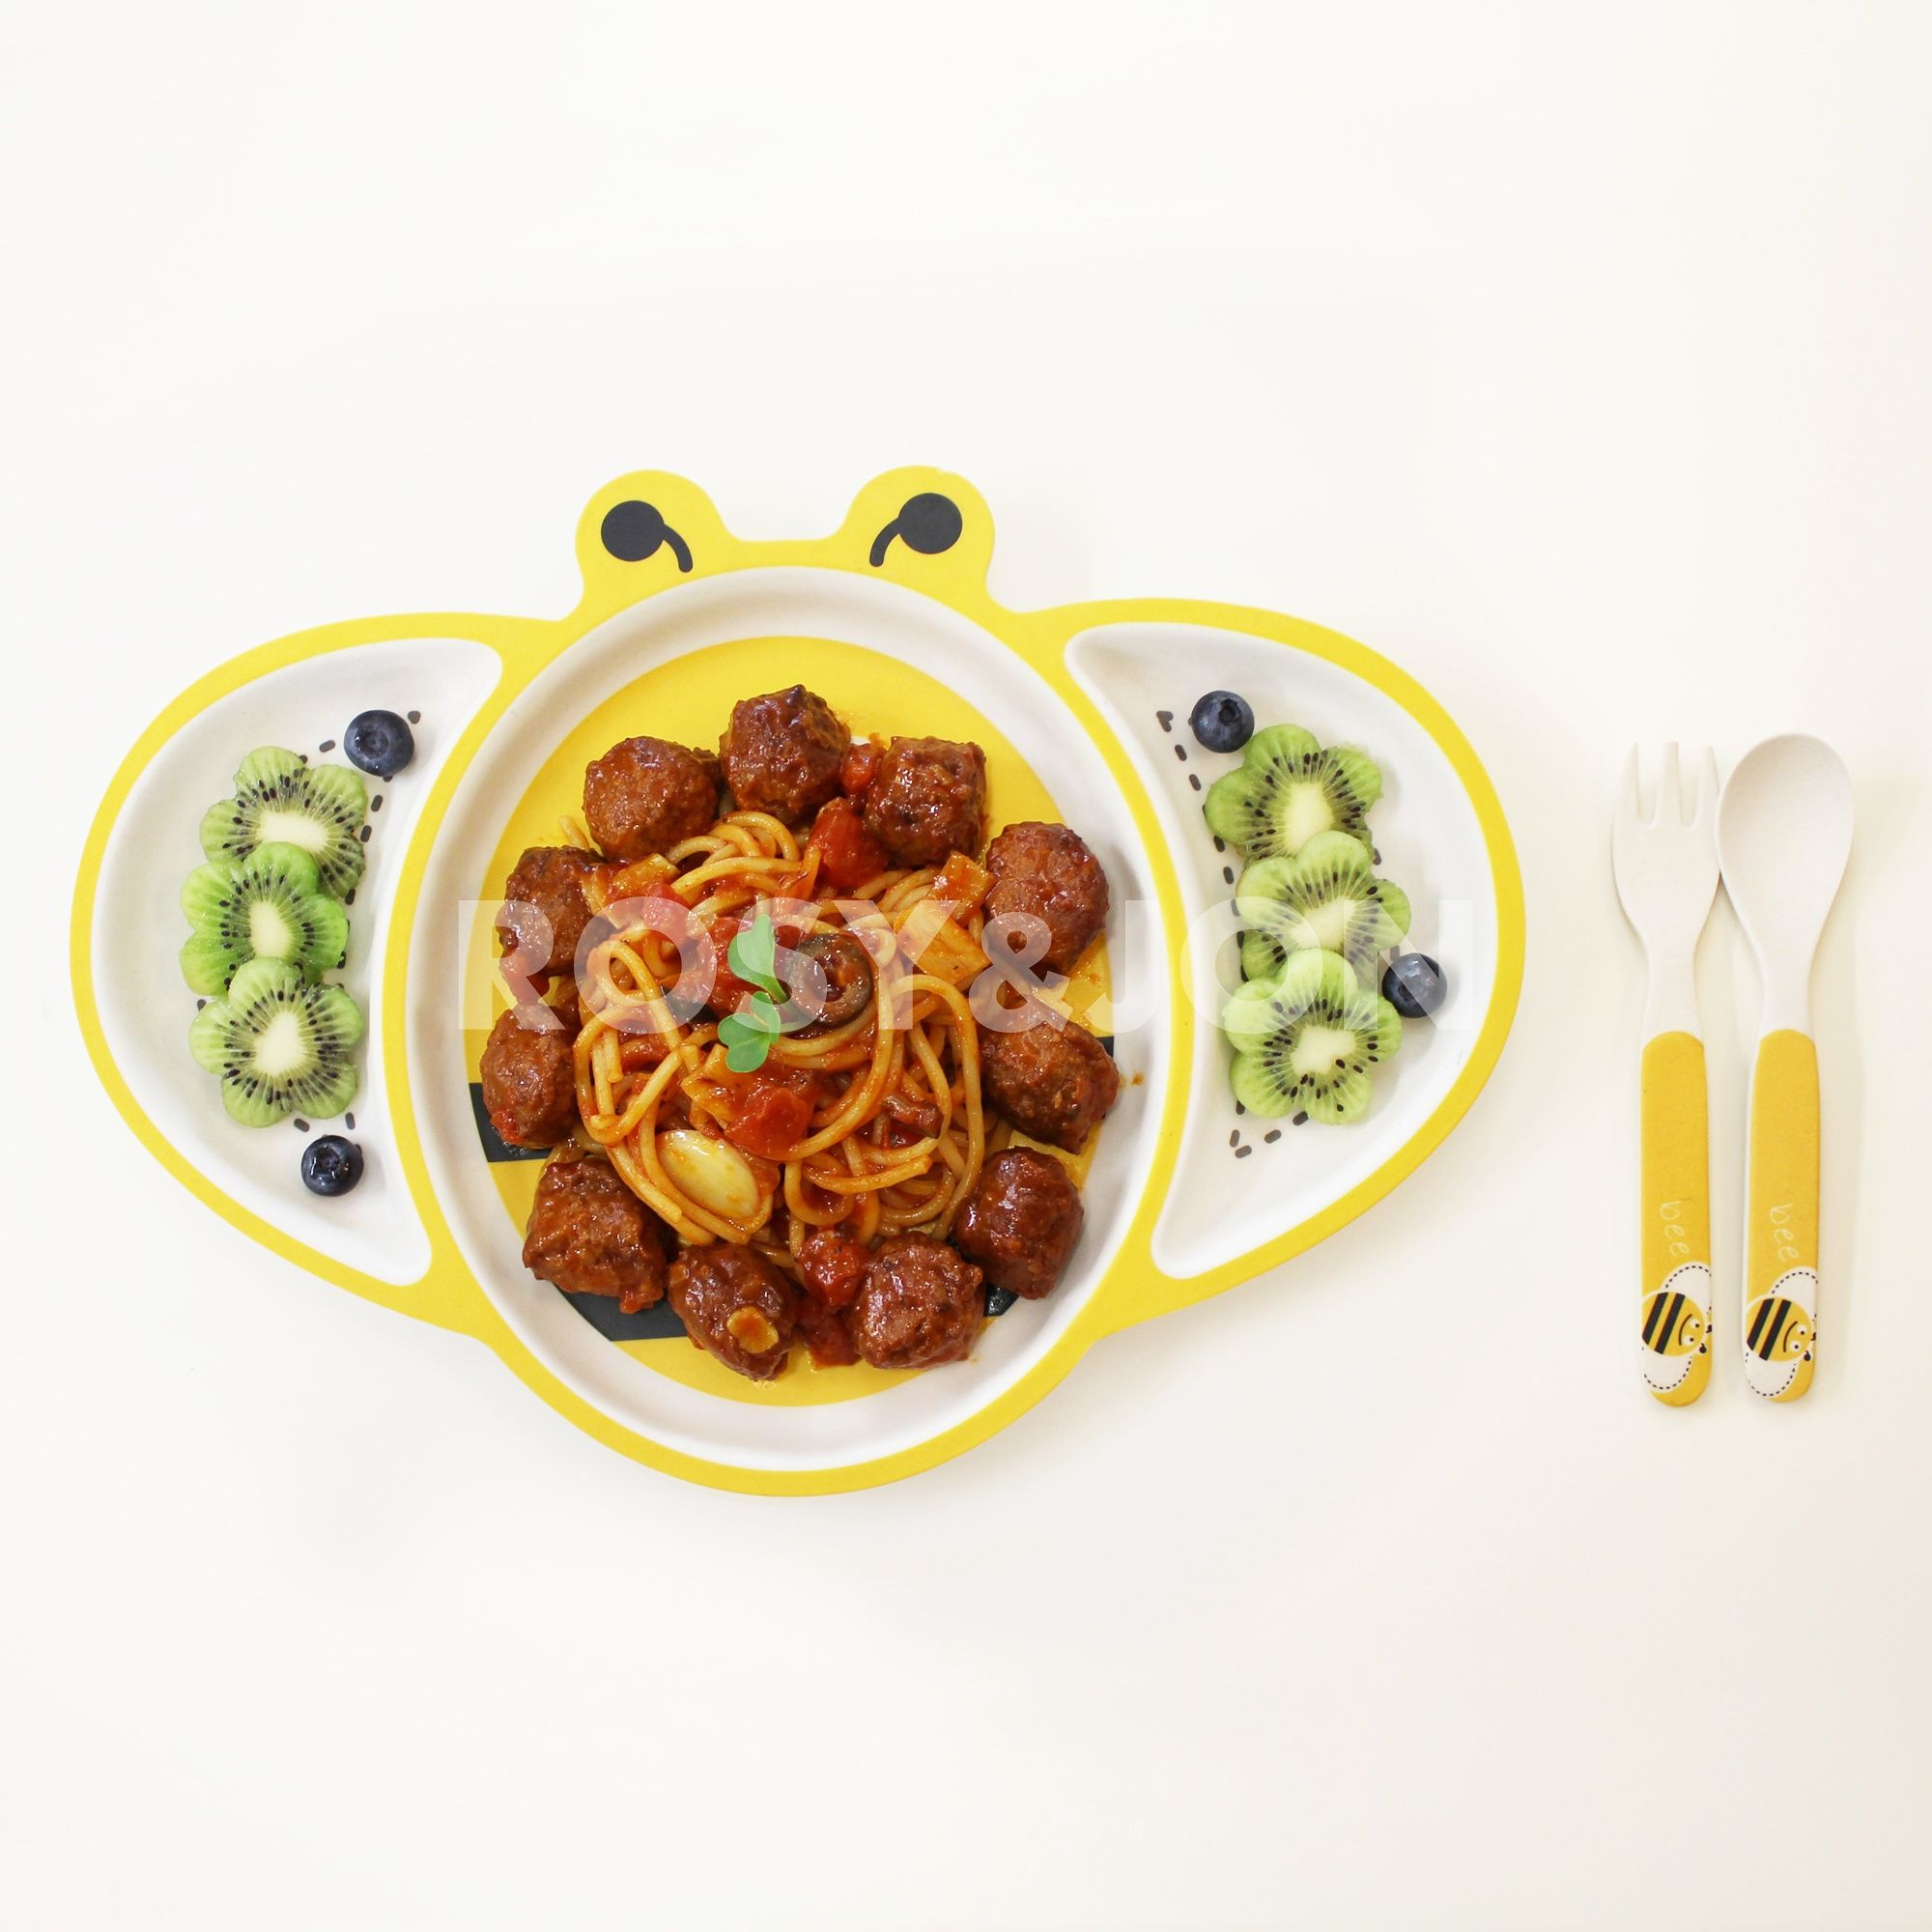 Kitchenware ROSYnJONs Animal Bamboo Plate Bee Made By Wood Fibers We Offer The Best